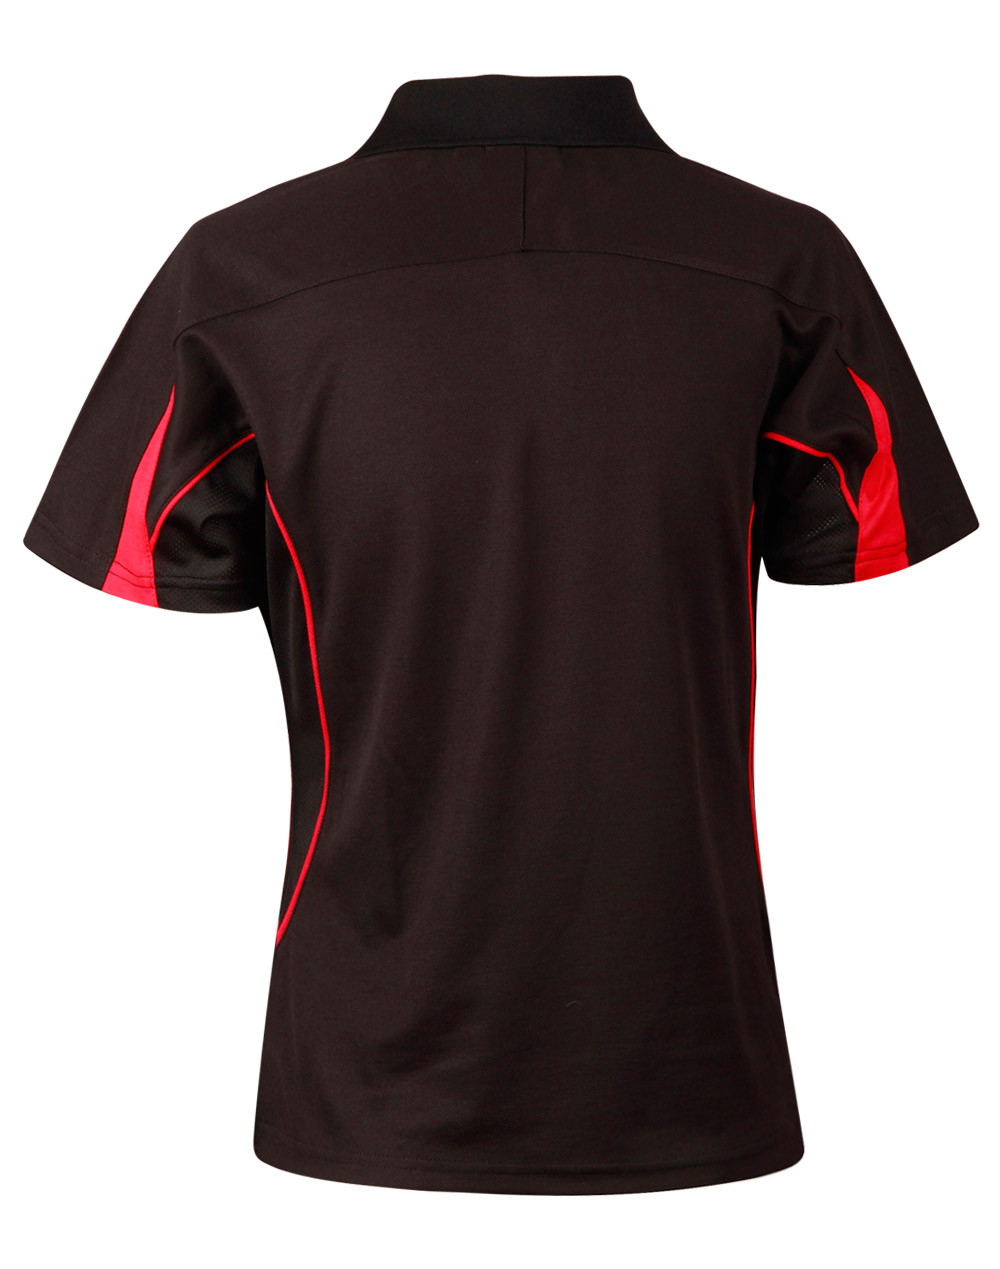 https://s3-ap-southeast-1.amazonaws.com/ws-imgs/POLOSHIRTS/PS54_BlackRed_Back.jpg